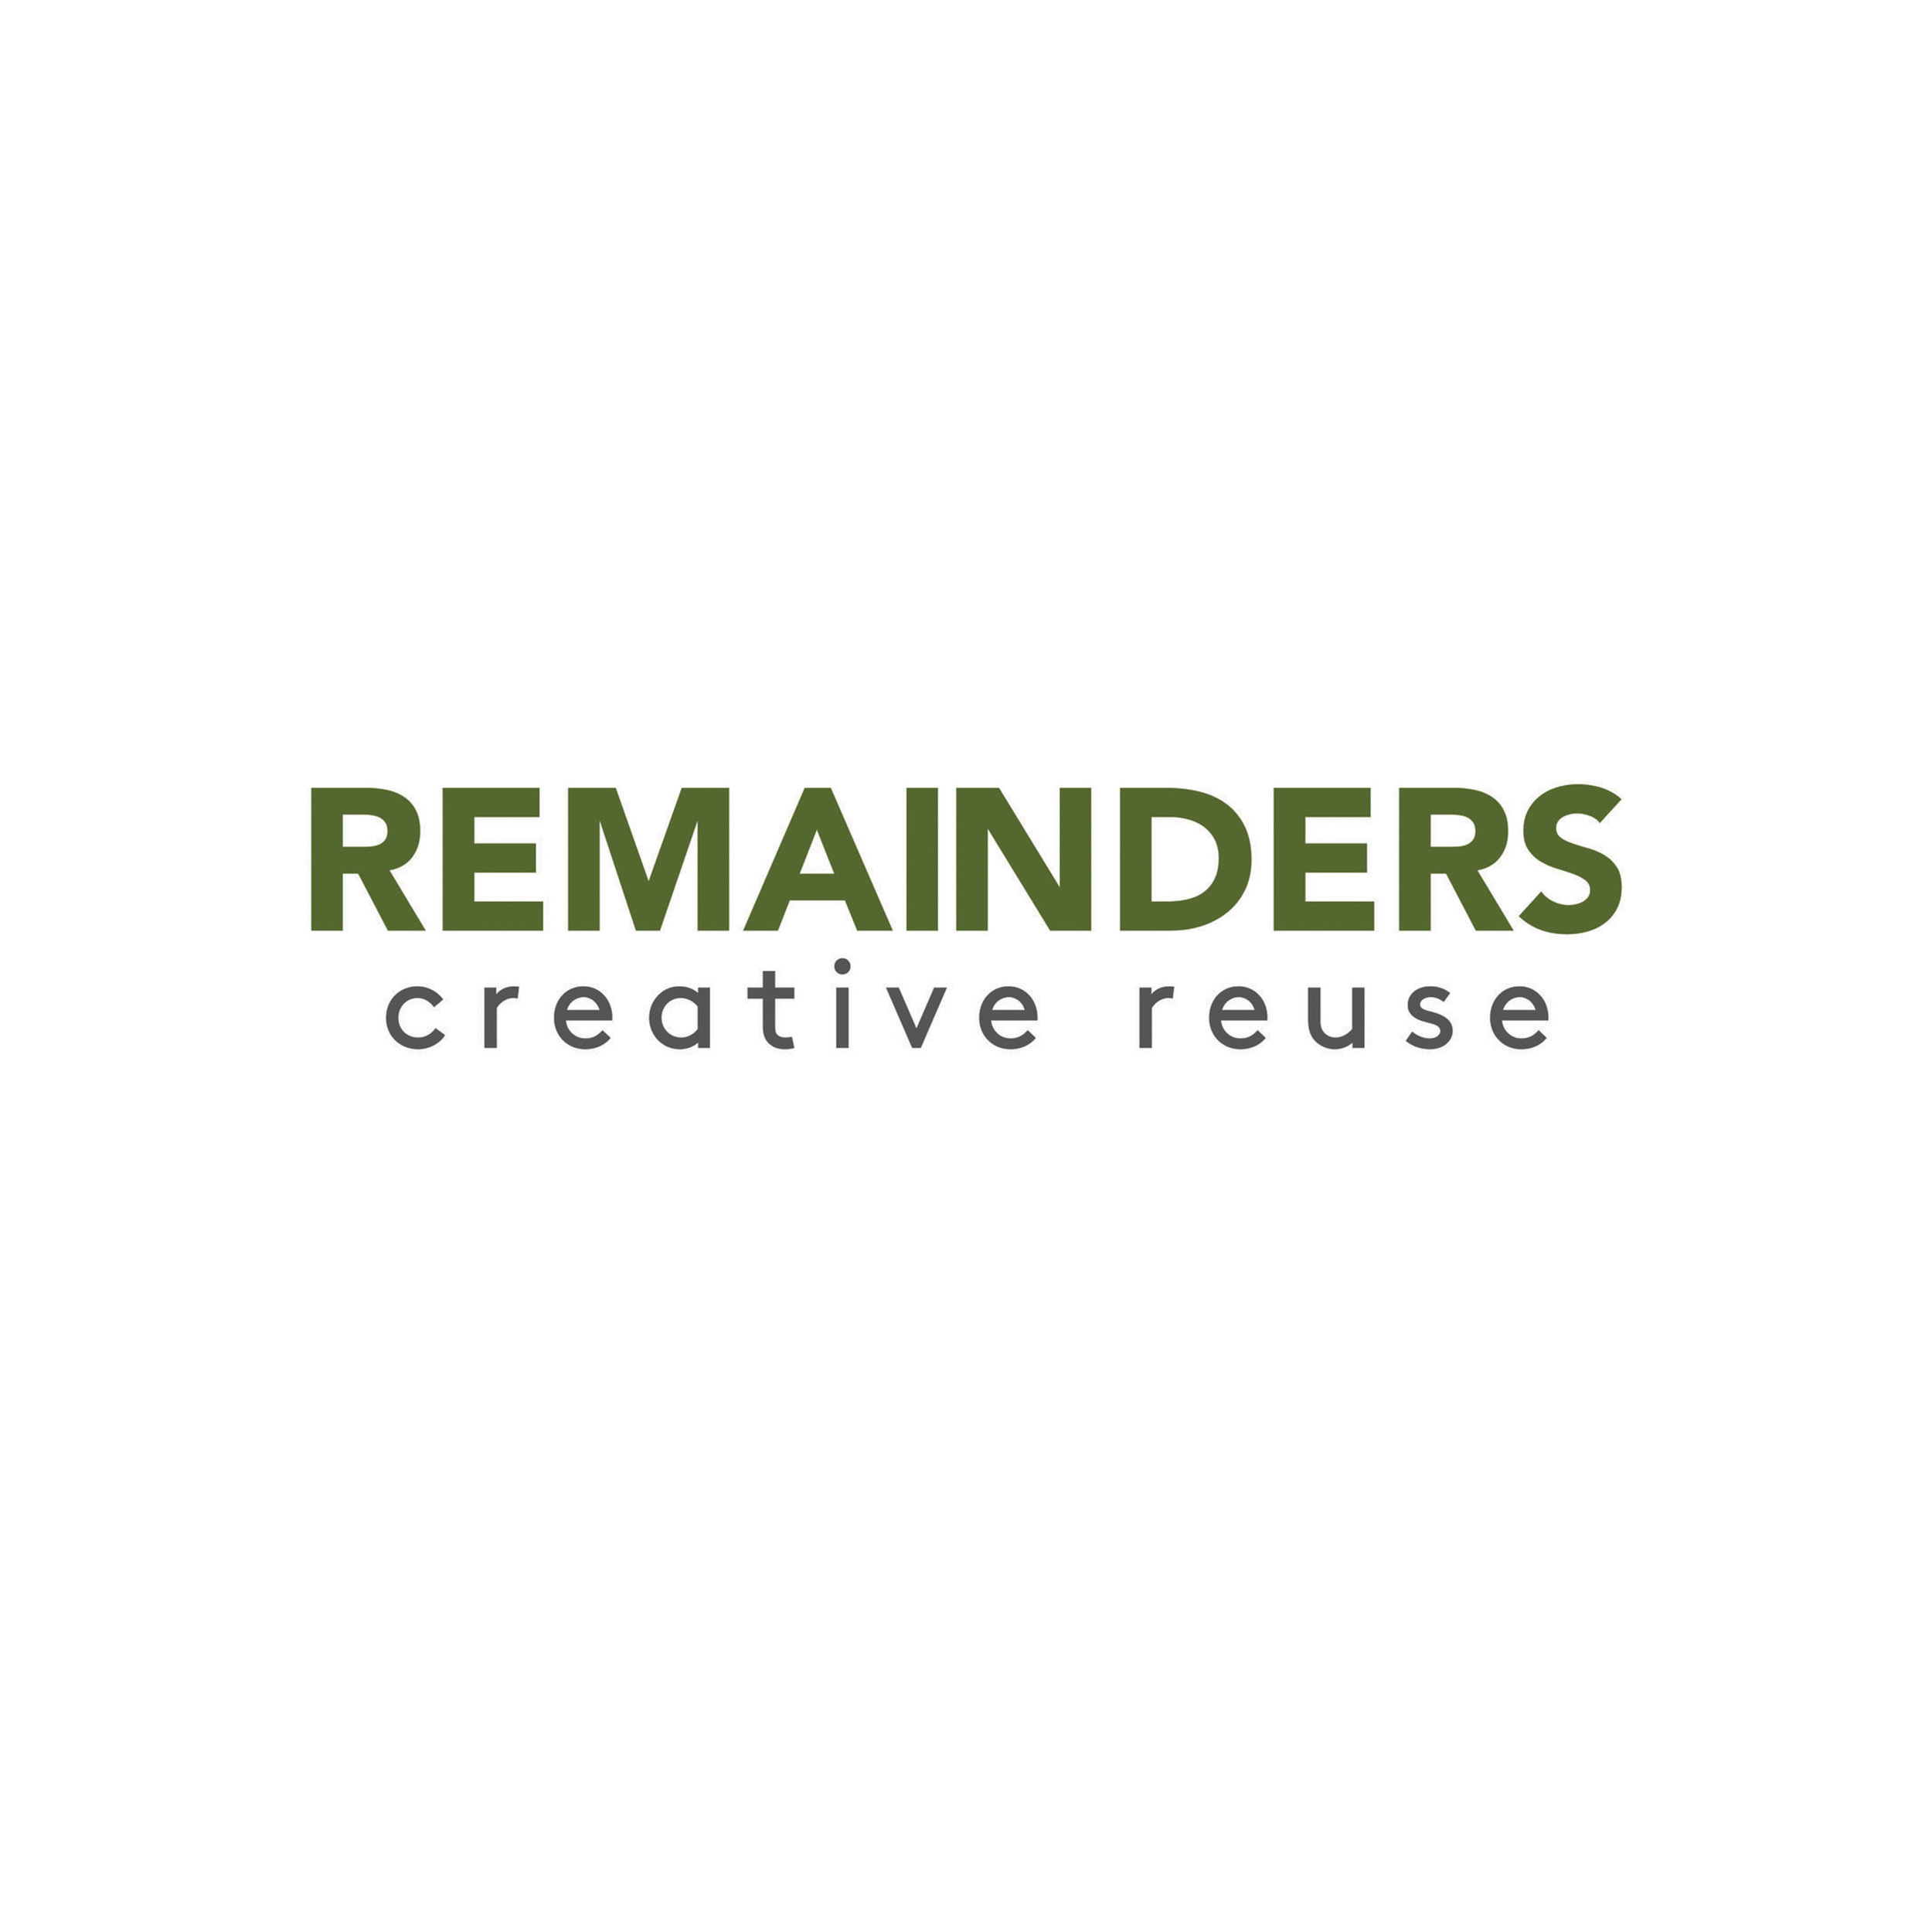 remainders_logo.jpg